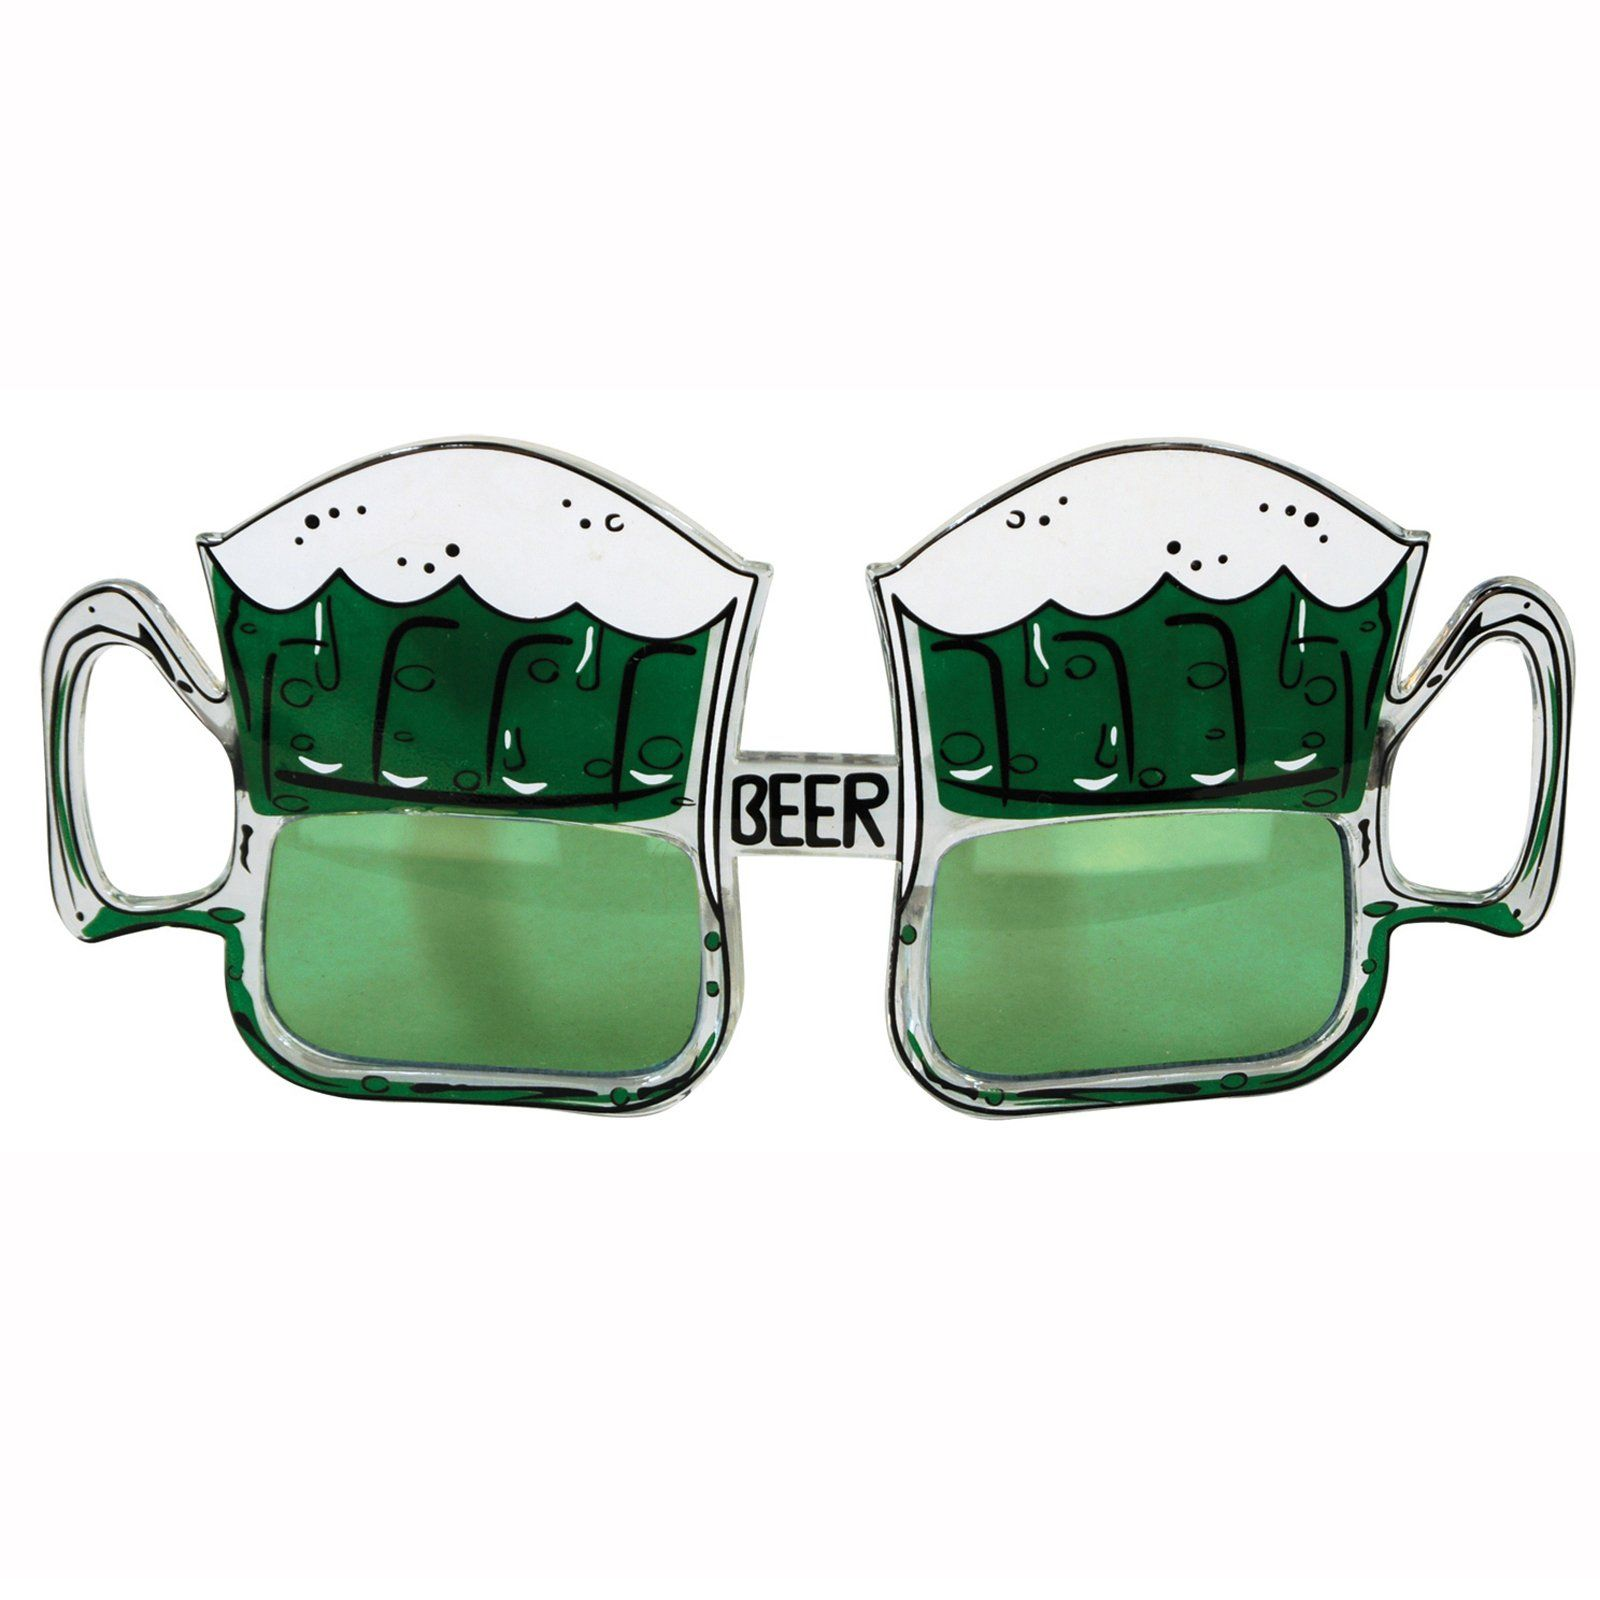 2a44e5f20fc5 St. Patrick Beer Mug Fanci-Frames Description: Everyone else will be green  with envy! You'll be stylin' on St. Patty's Day when you wear these sudsy  green ...